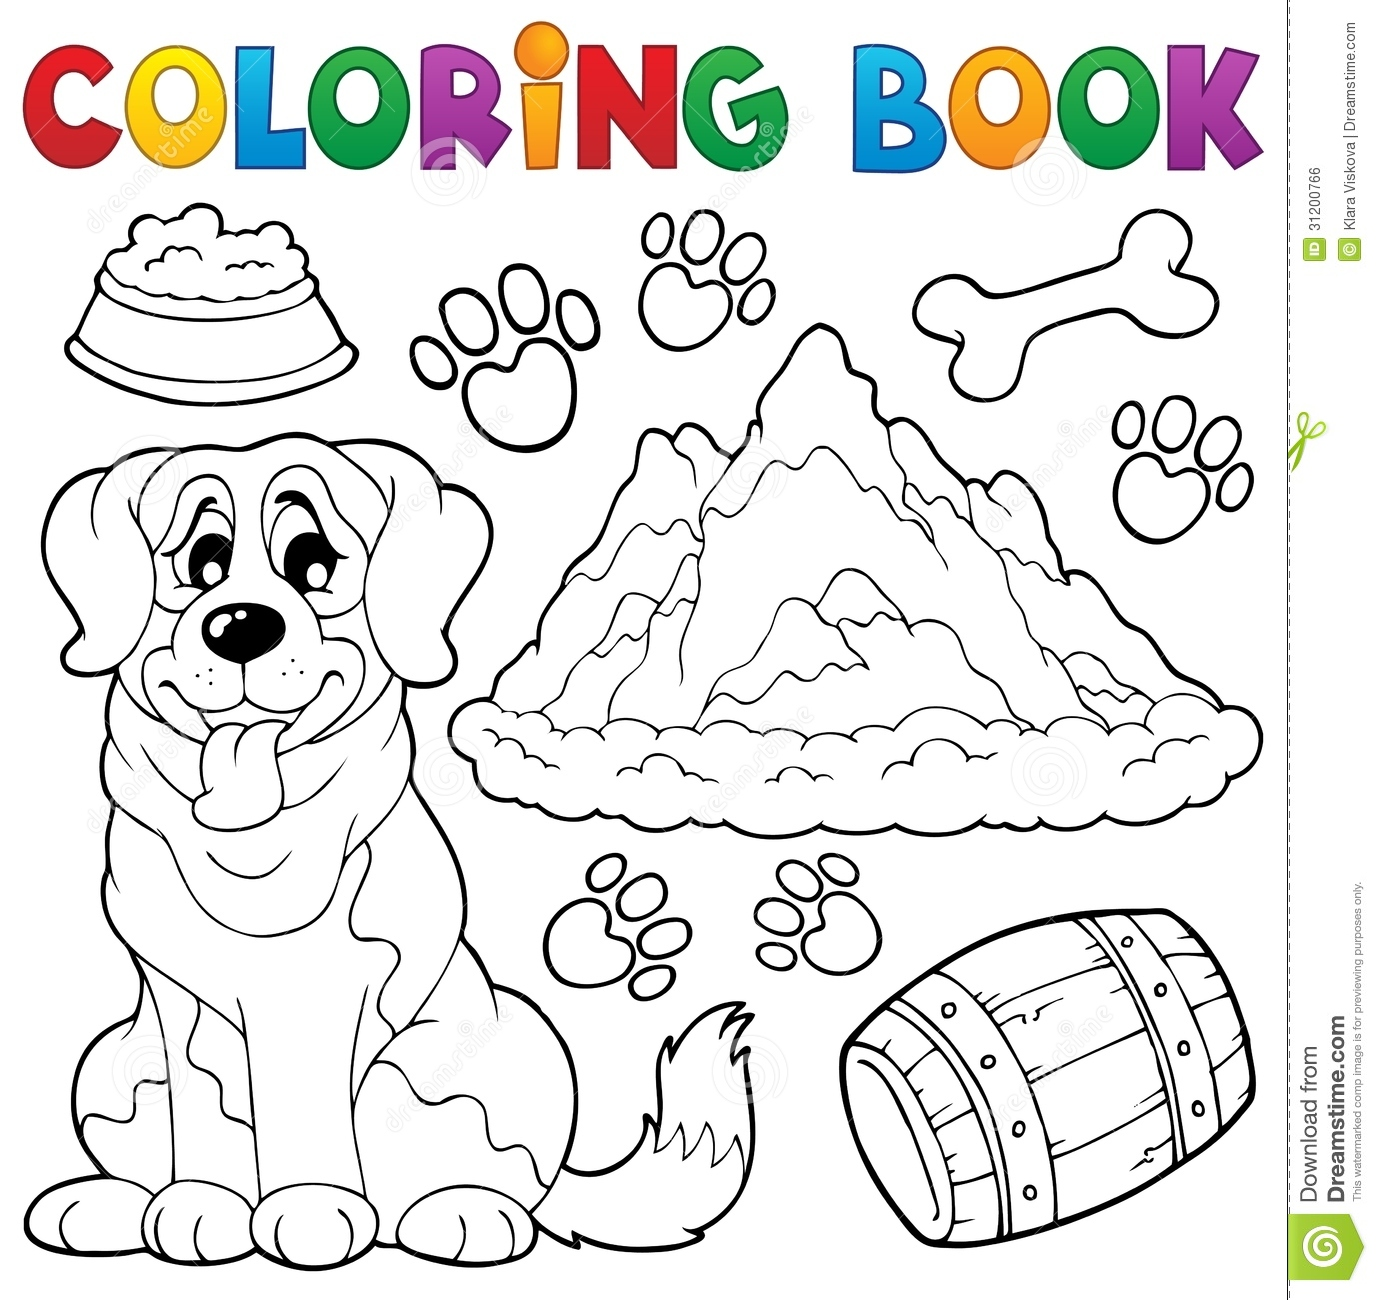 coloring book dog theme 7 royalty free stock image image 31200766